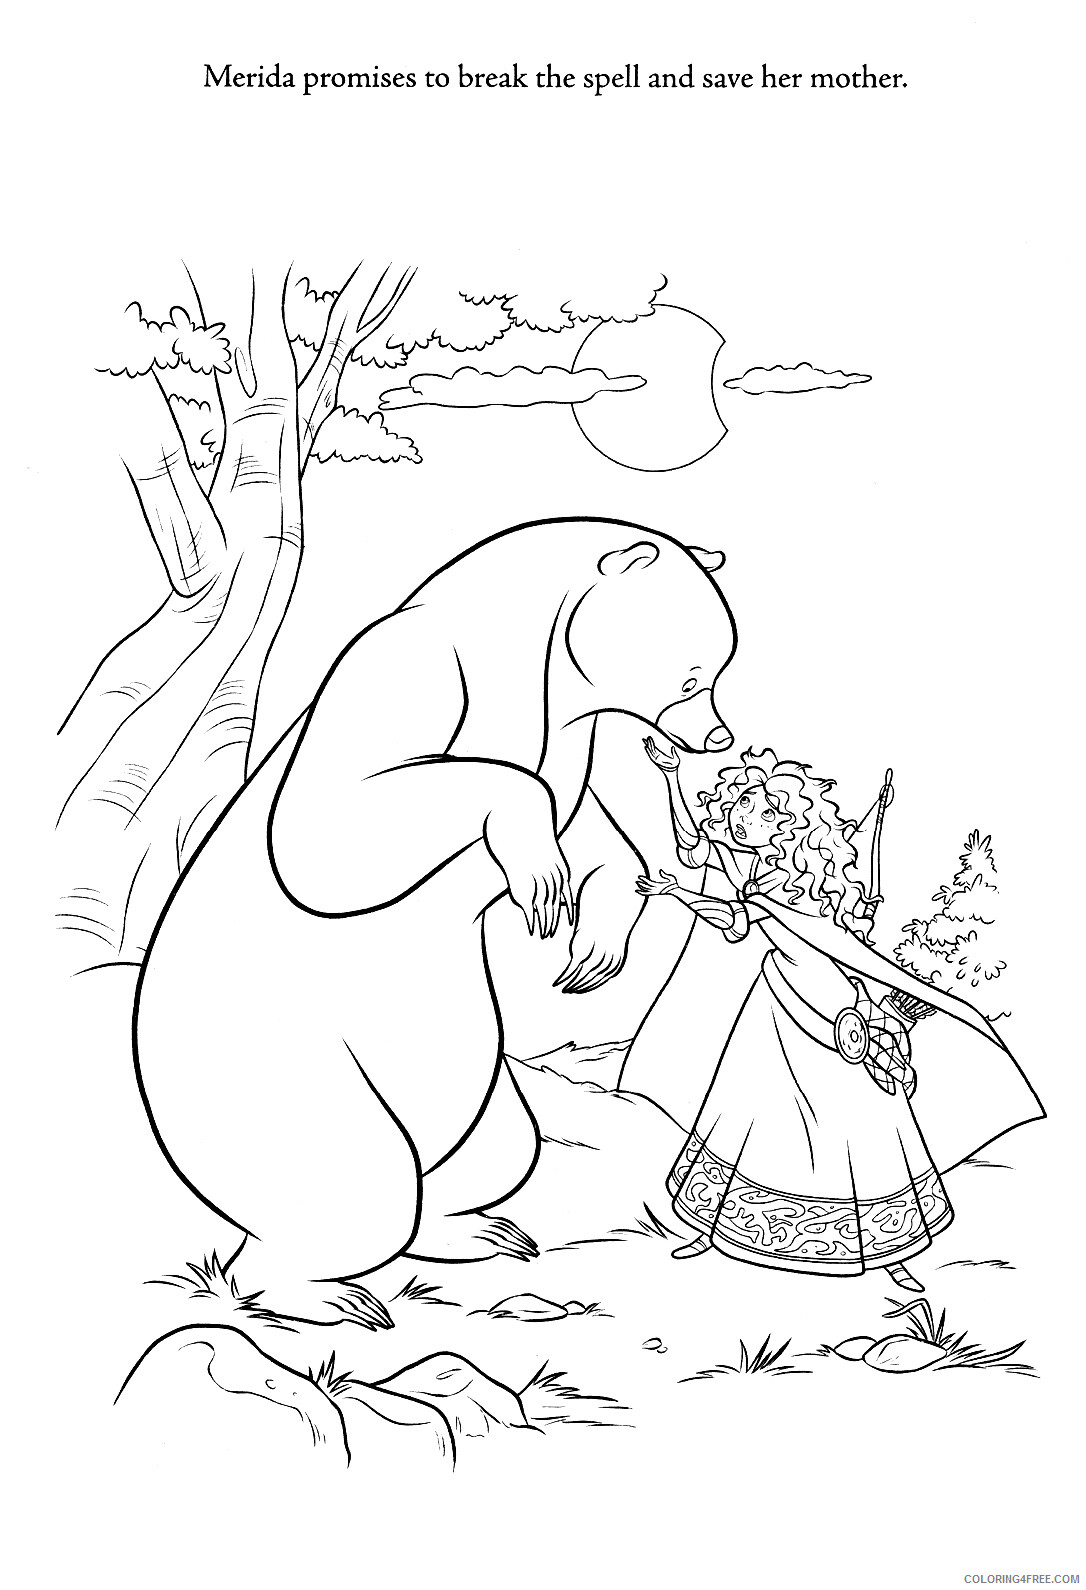 Brave Coloring Pages TV Film Brave Merida and Mother Bear Printable 2020 01405 Coloring4free